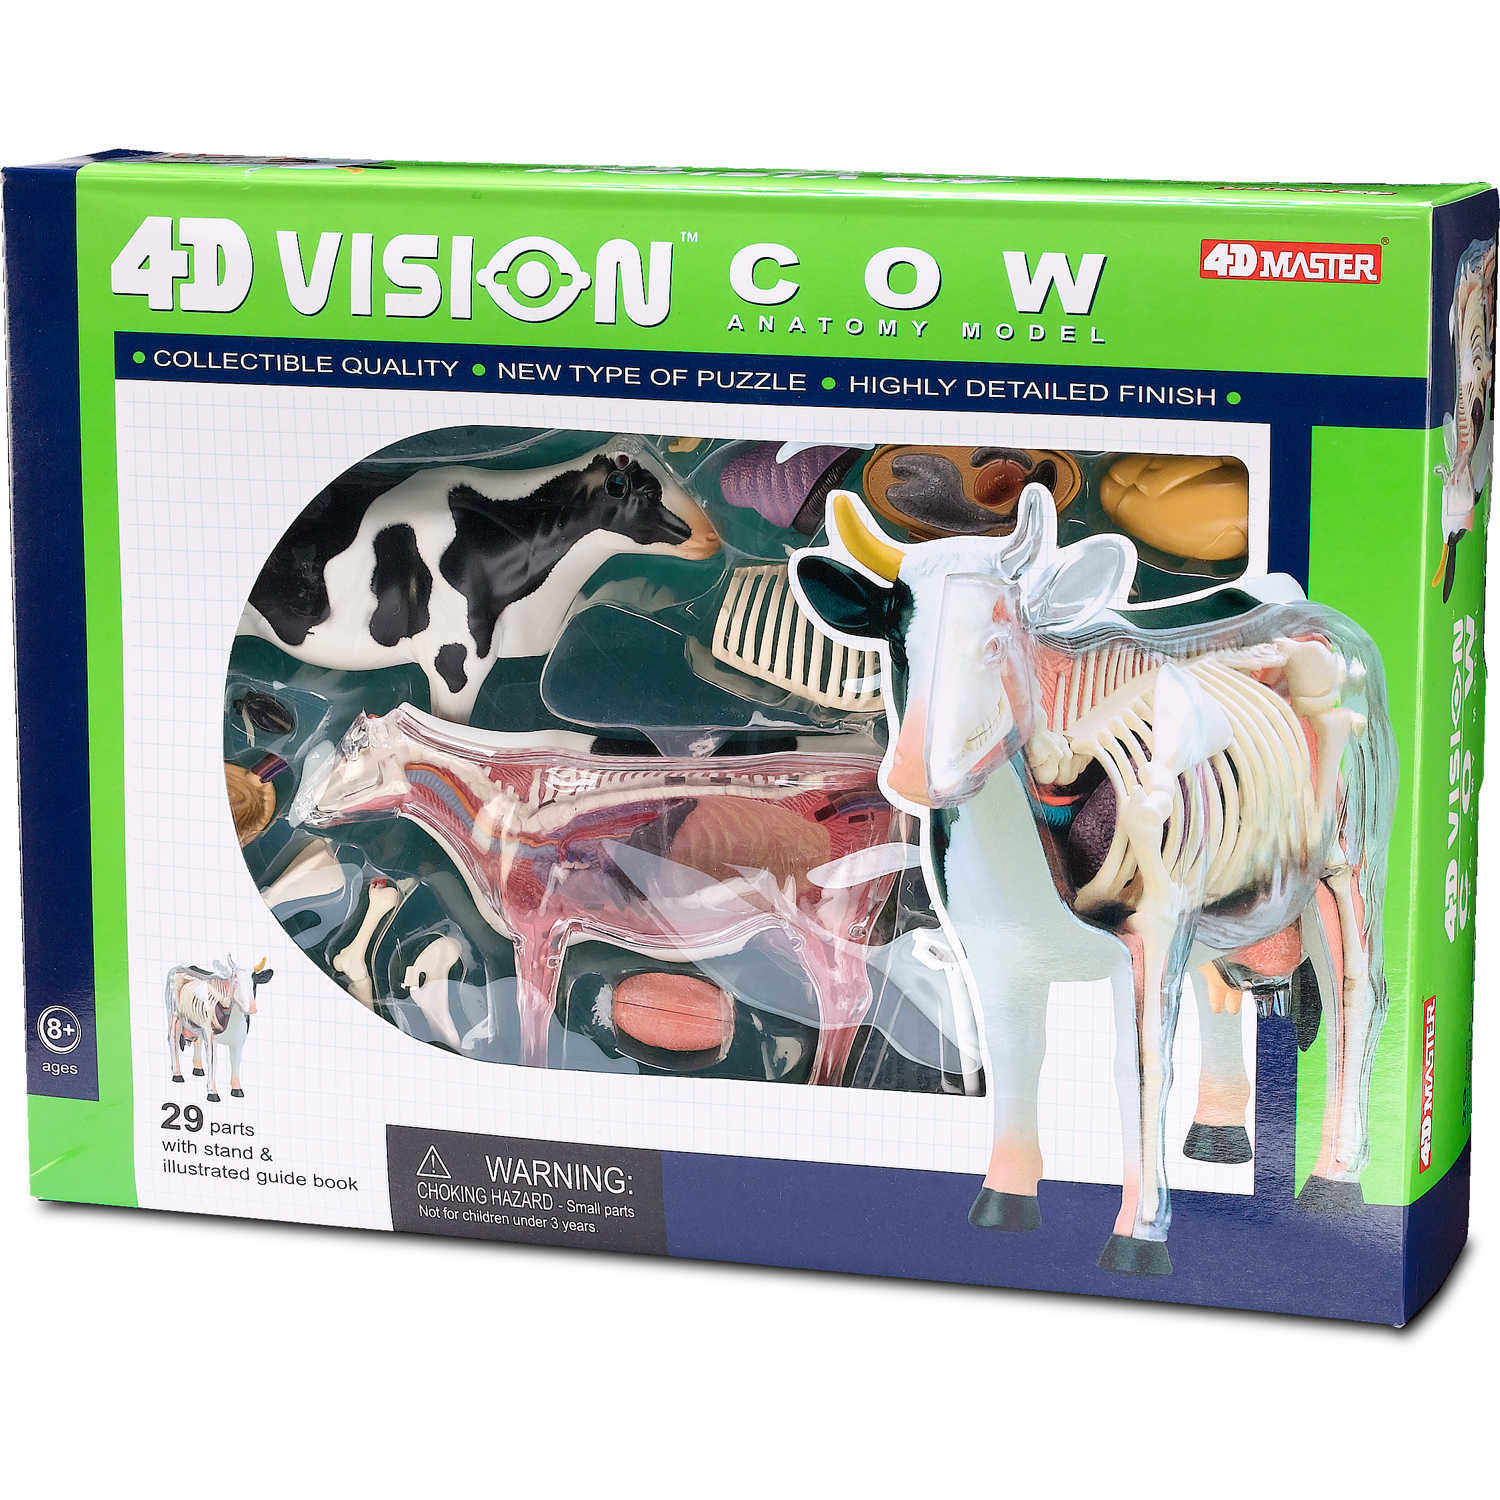 4D Vision™ Cow Anatomy Model